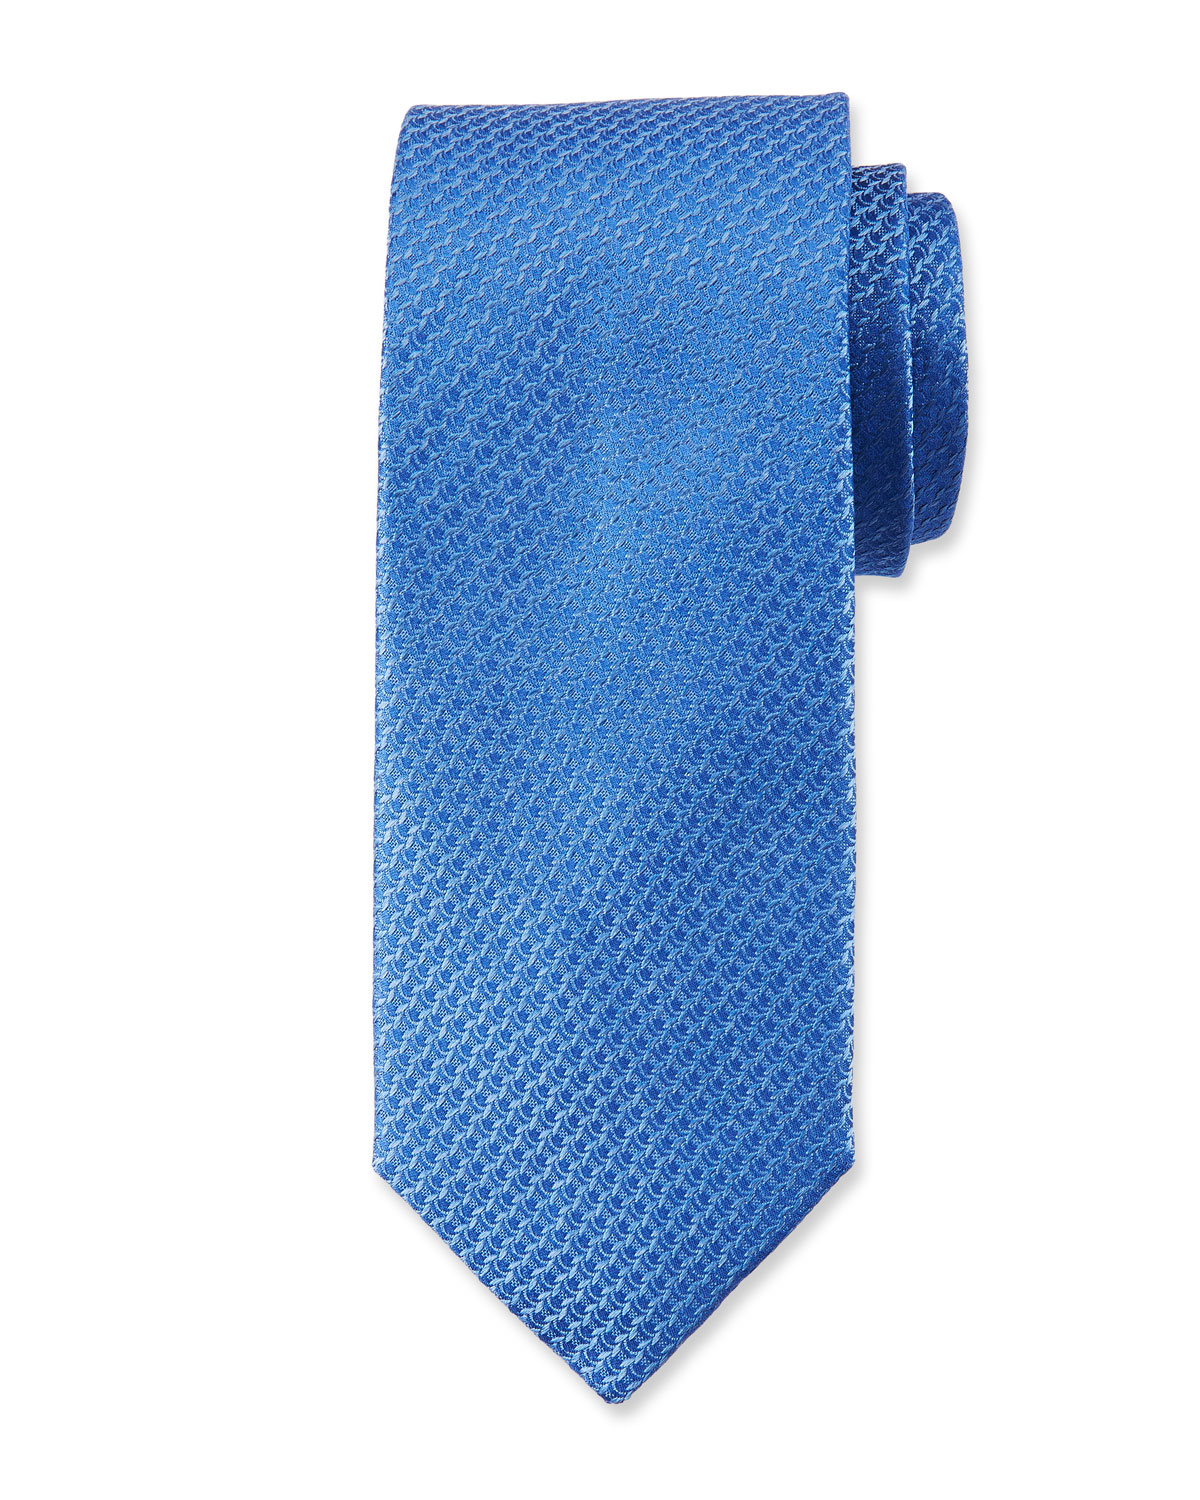 Textured Solid Silk Tie, Light Blue